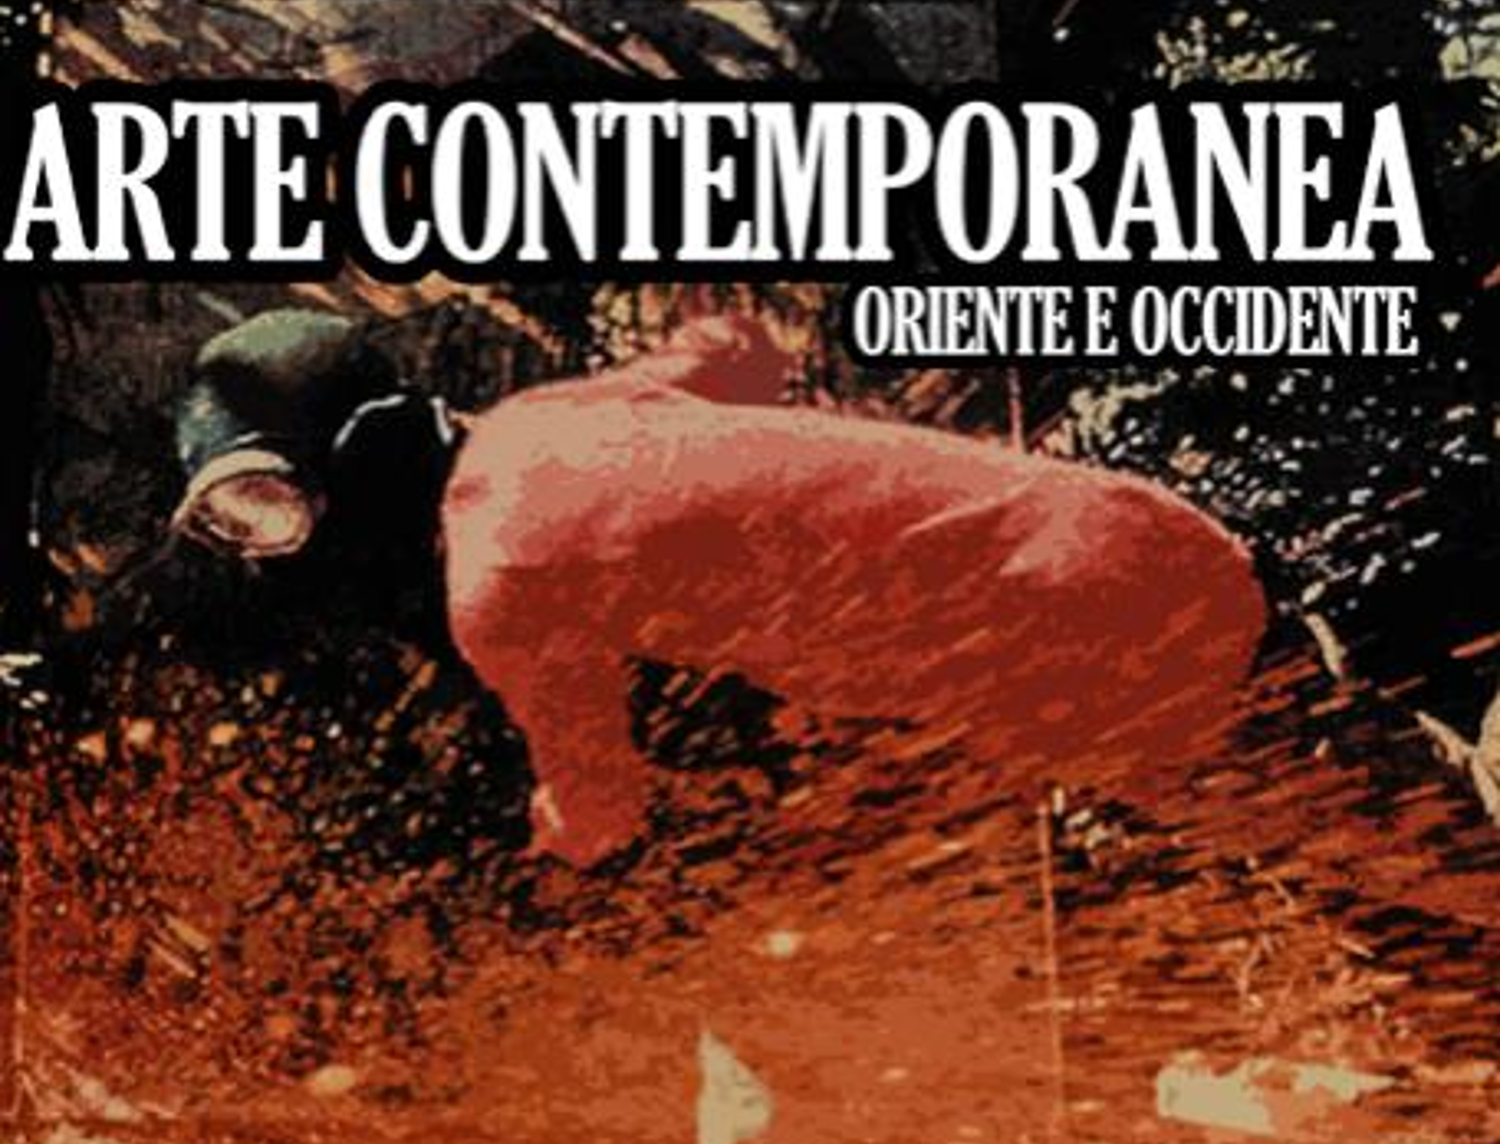 Arte contemporanea tra Occidente e Oriente